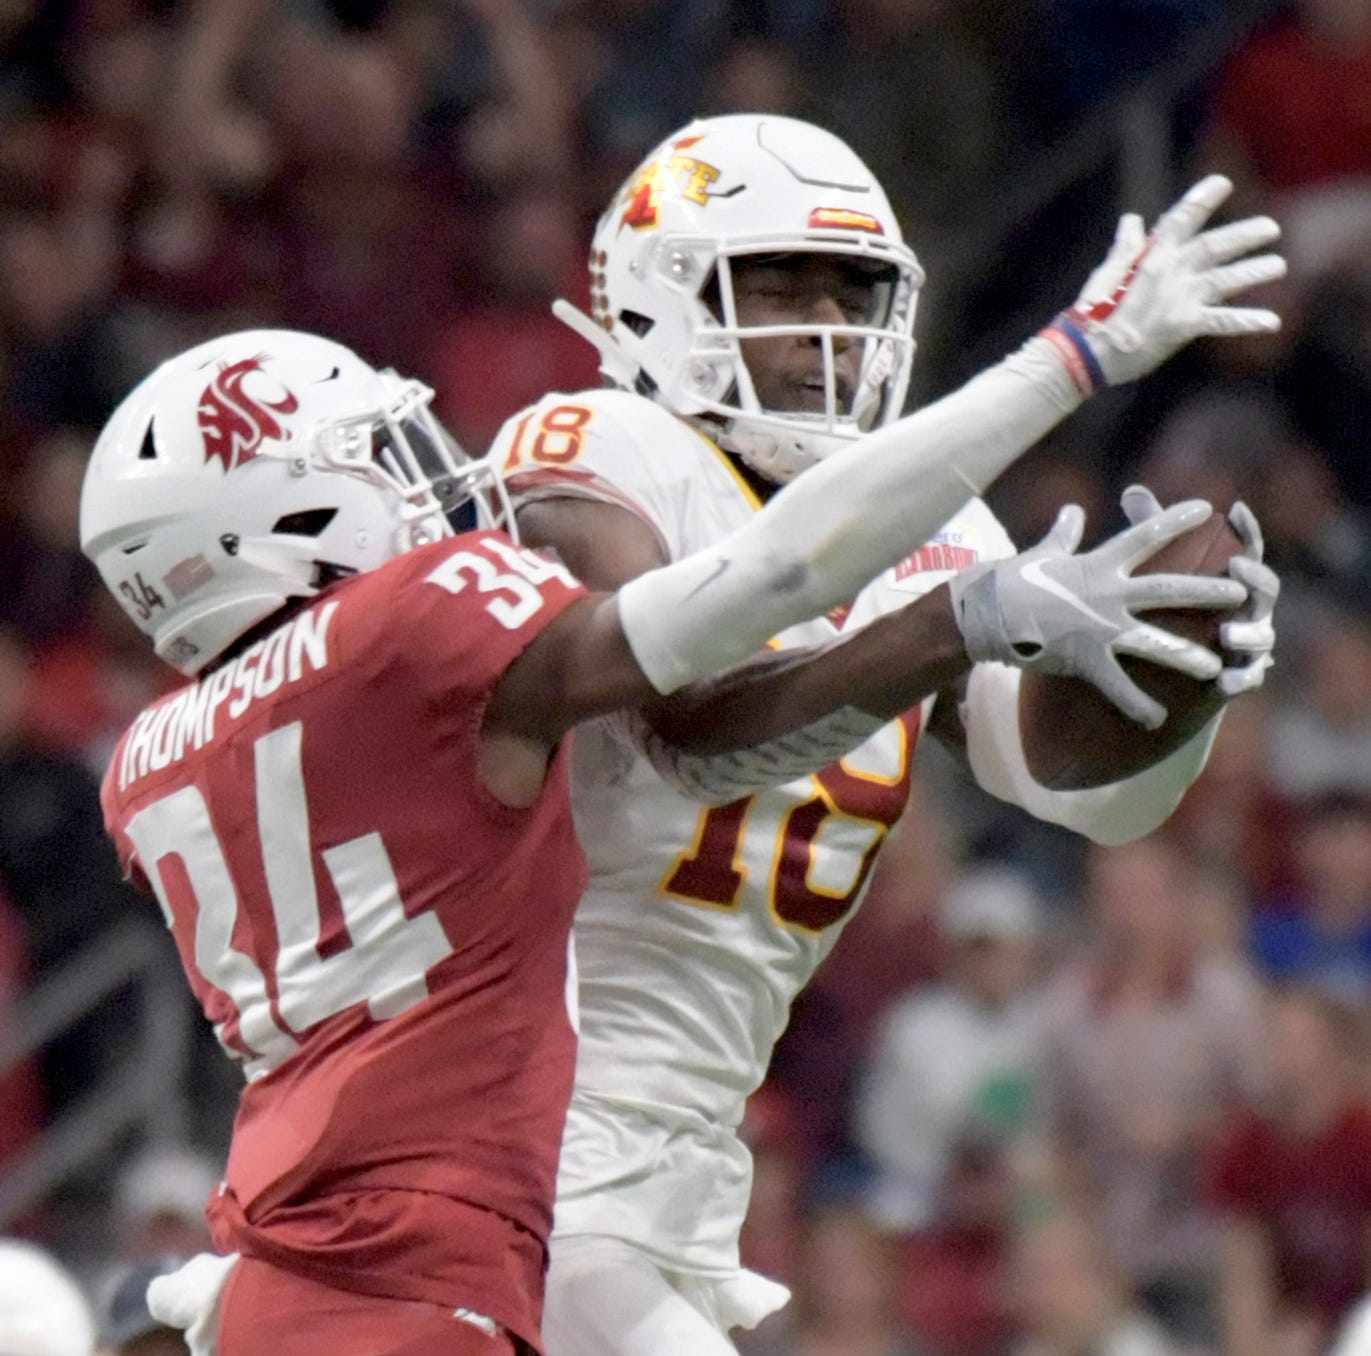 Cardinals select Iowa State's Hakeem Butler with the first pick in fourth round of draft